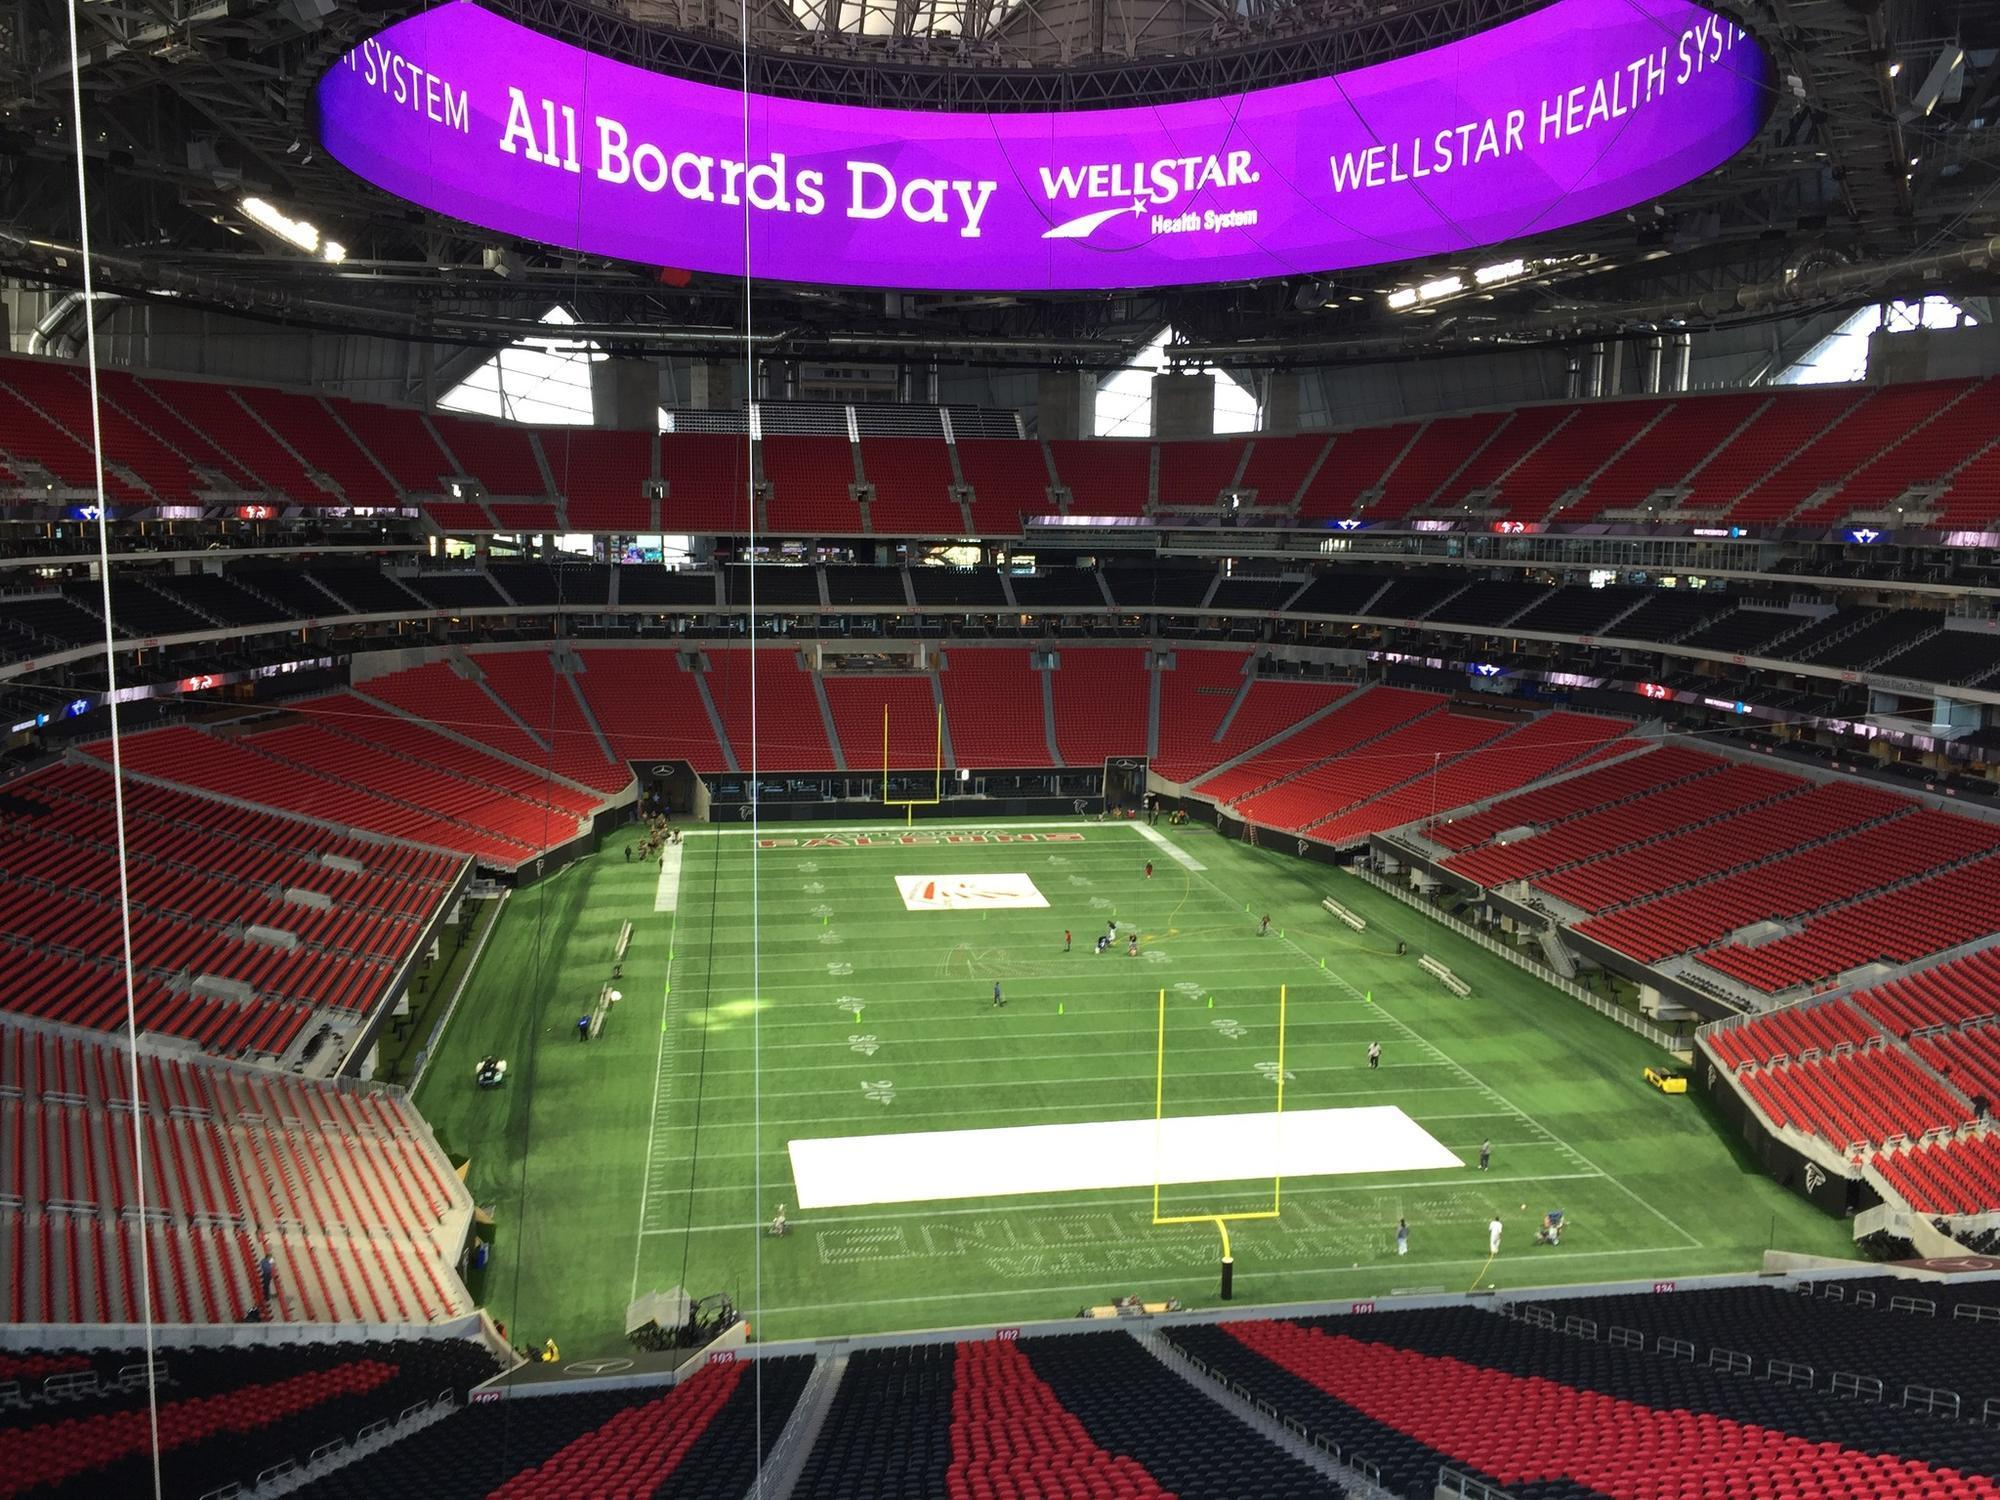 Atlanta 39 s new mercedes benz stadium caters to all daily for Hotels near the mercedes benz stadium